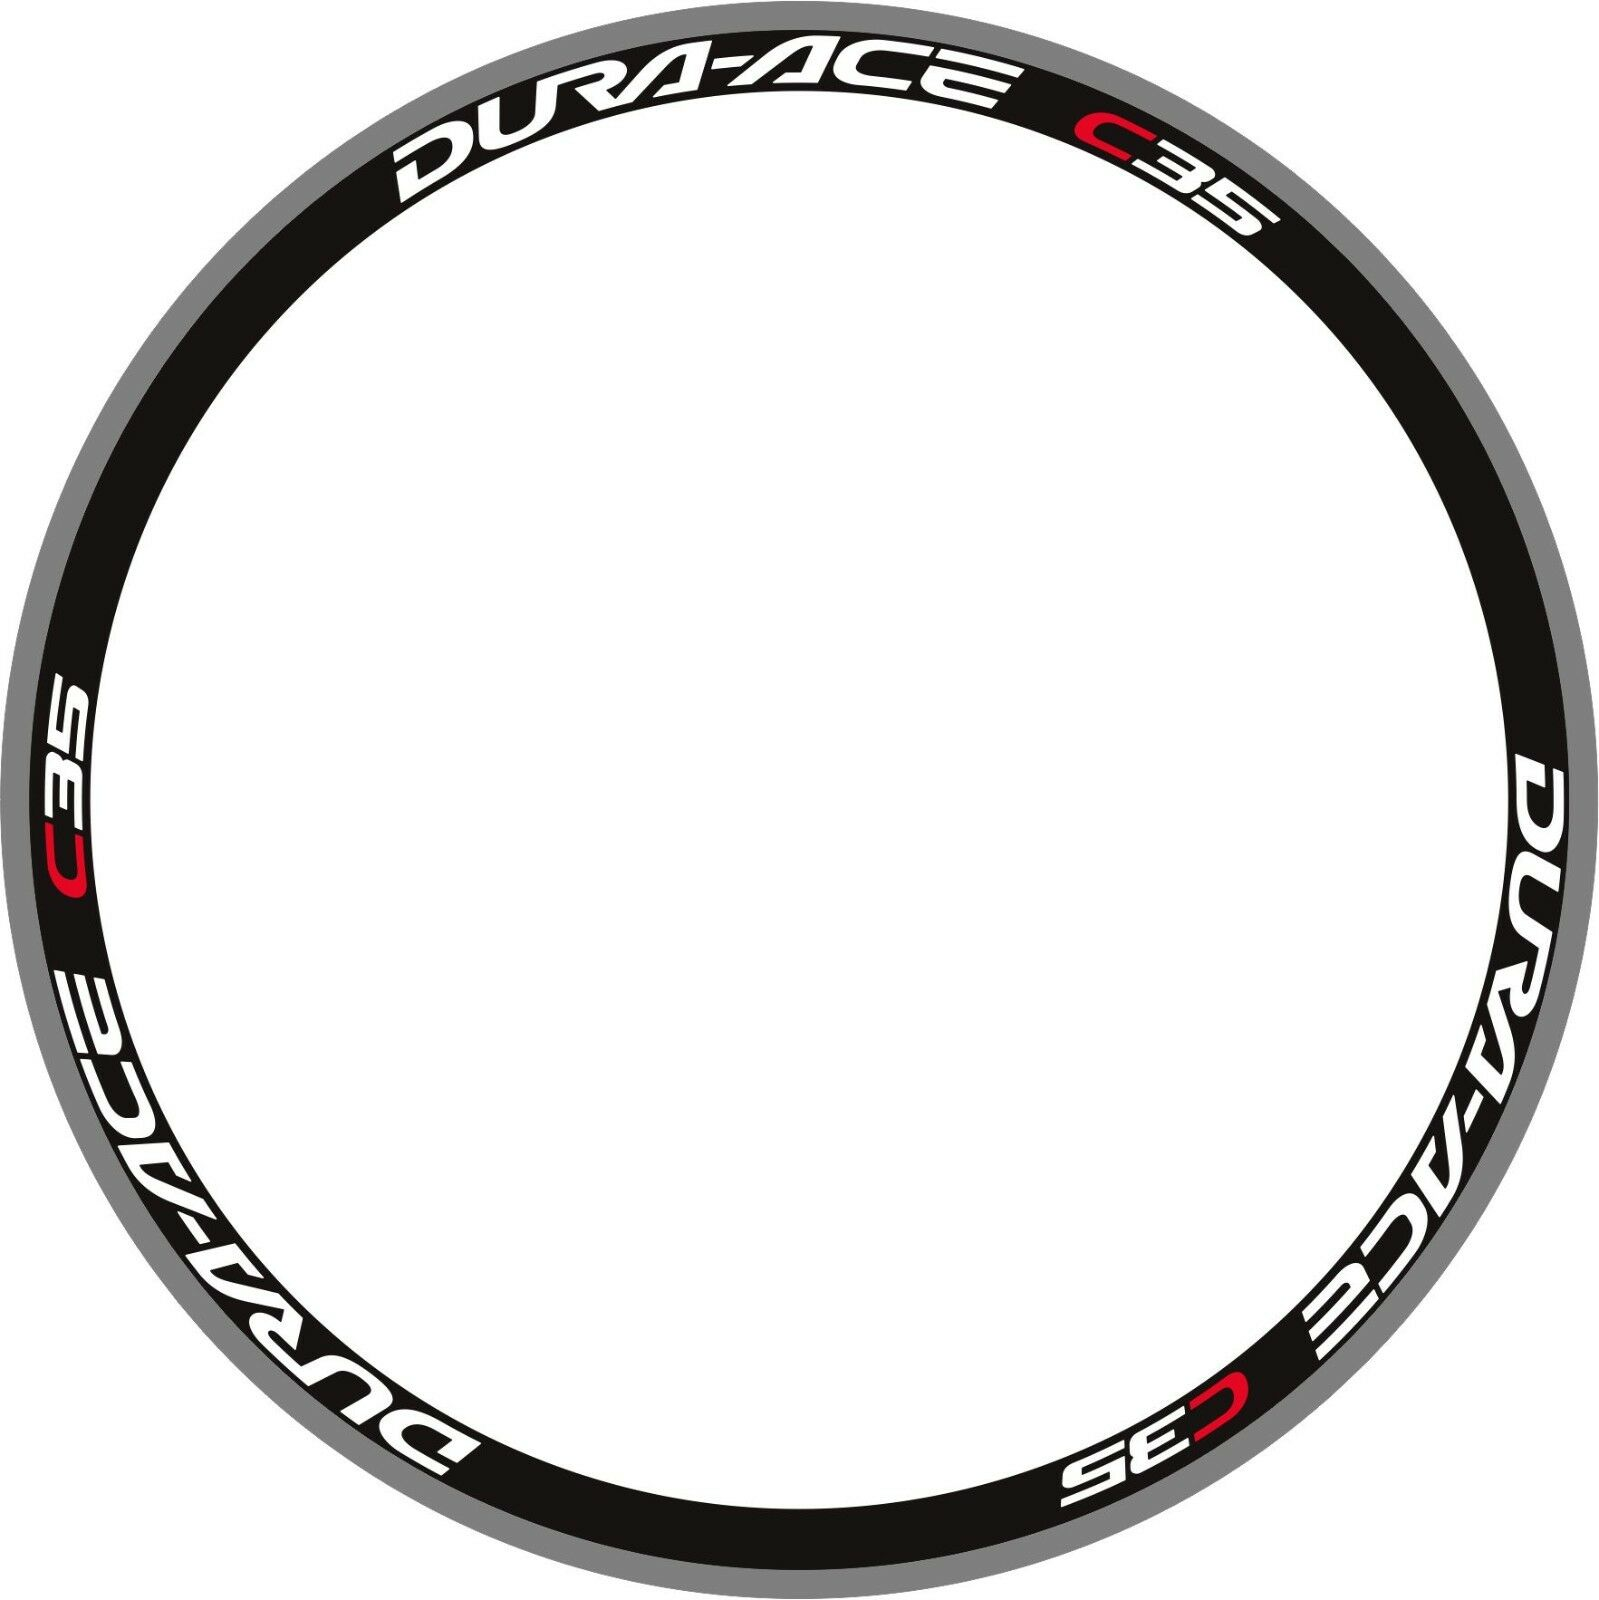 DURA ACE C35 RIM DECAL SET  FOR TWO WHEELS white & red version